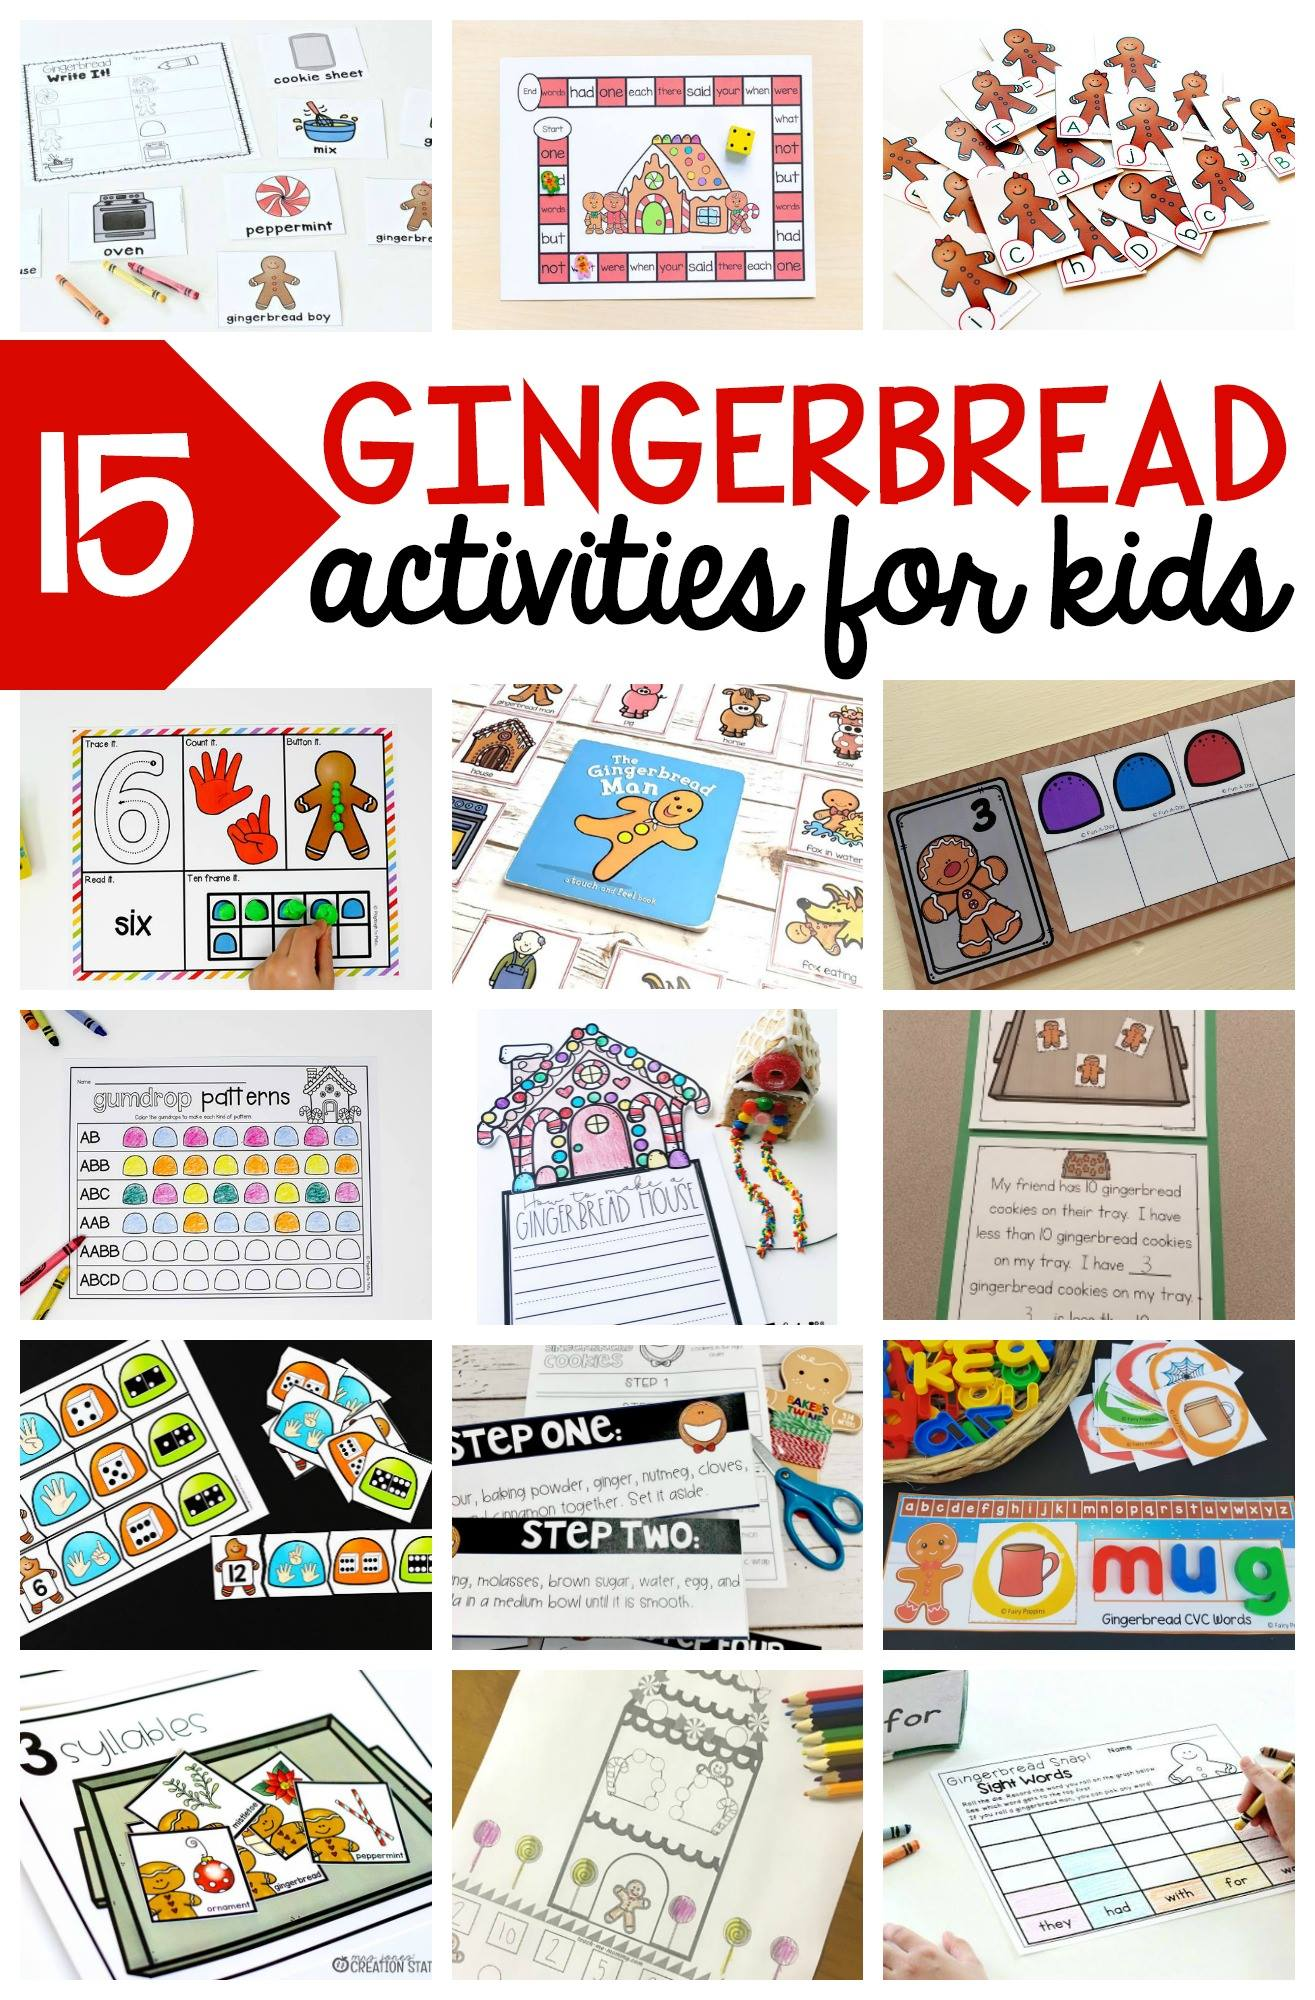 gingerbread activities for kids